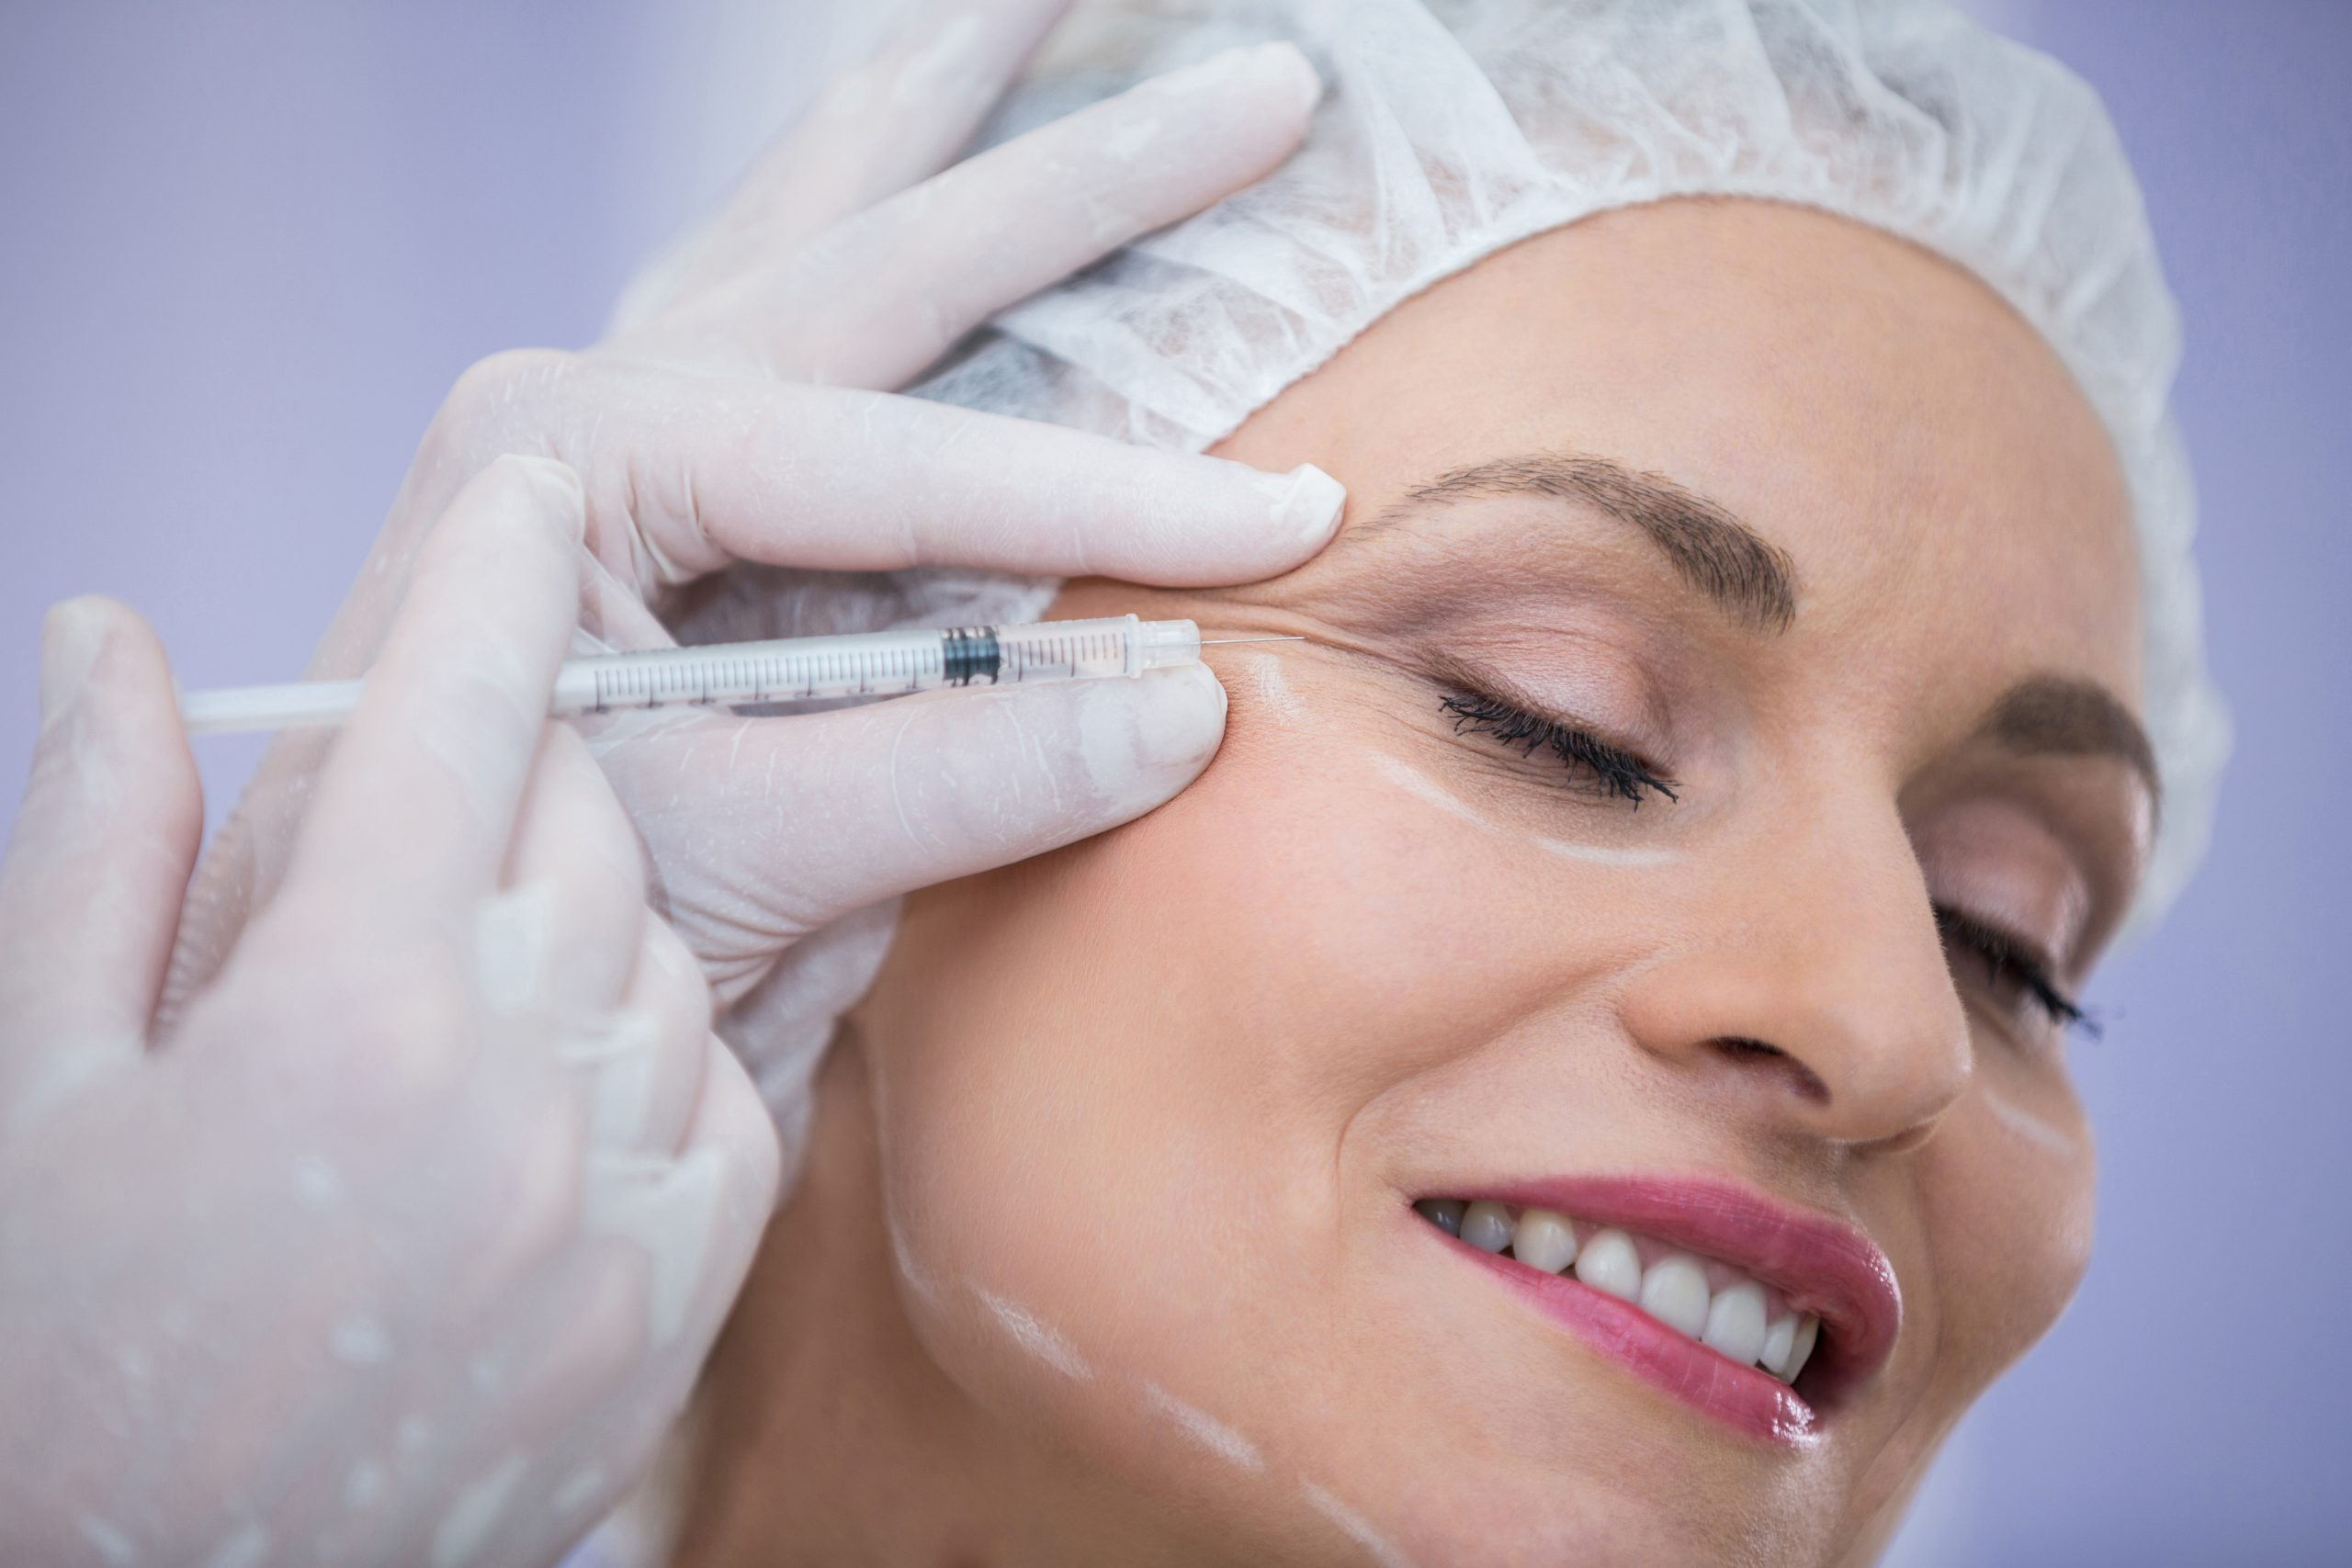 Close-up of woman receiving botox injection at clinic